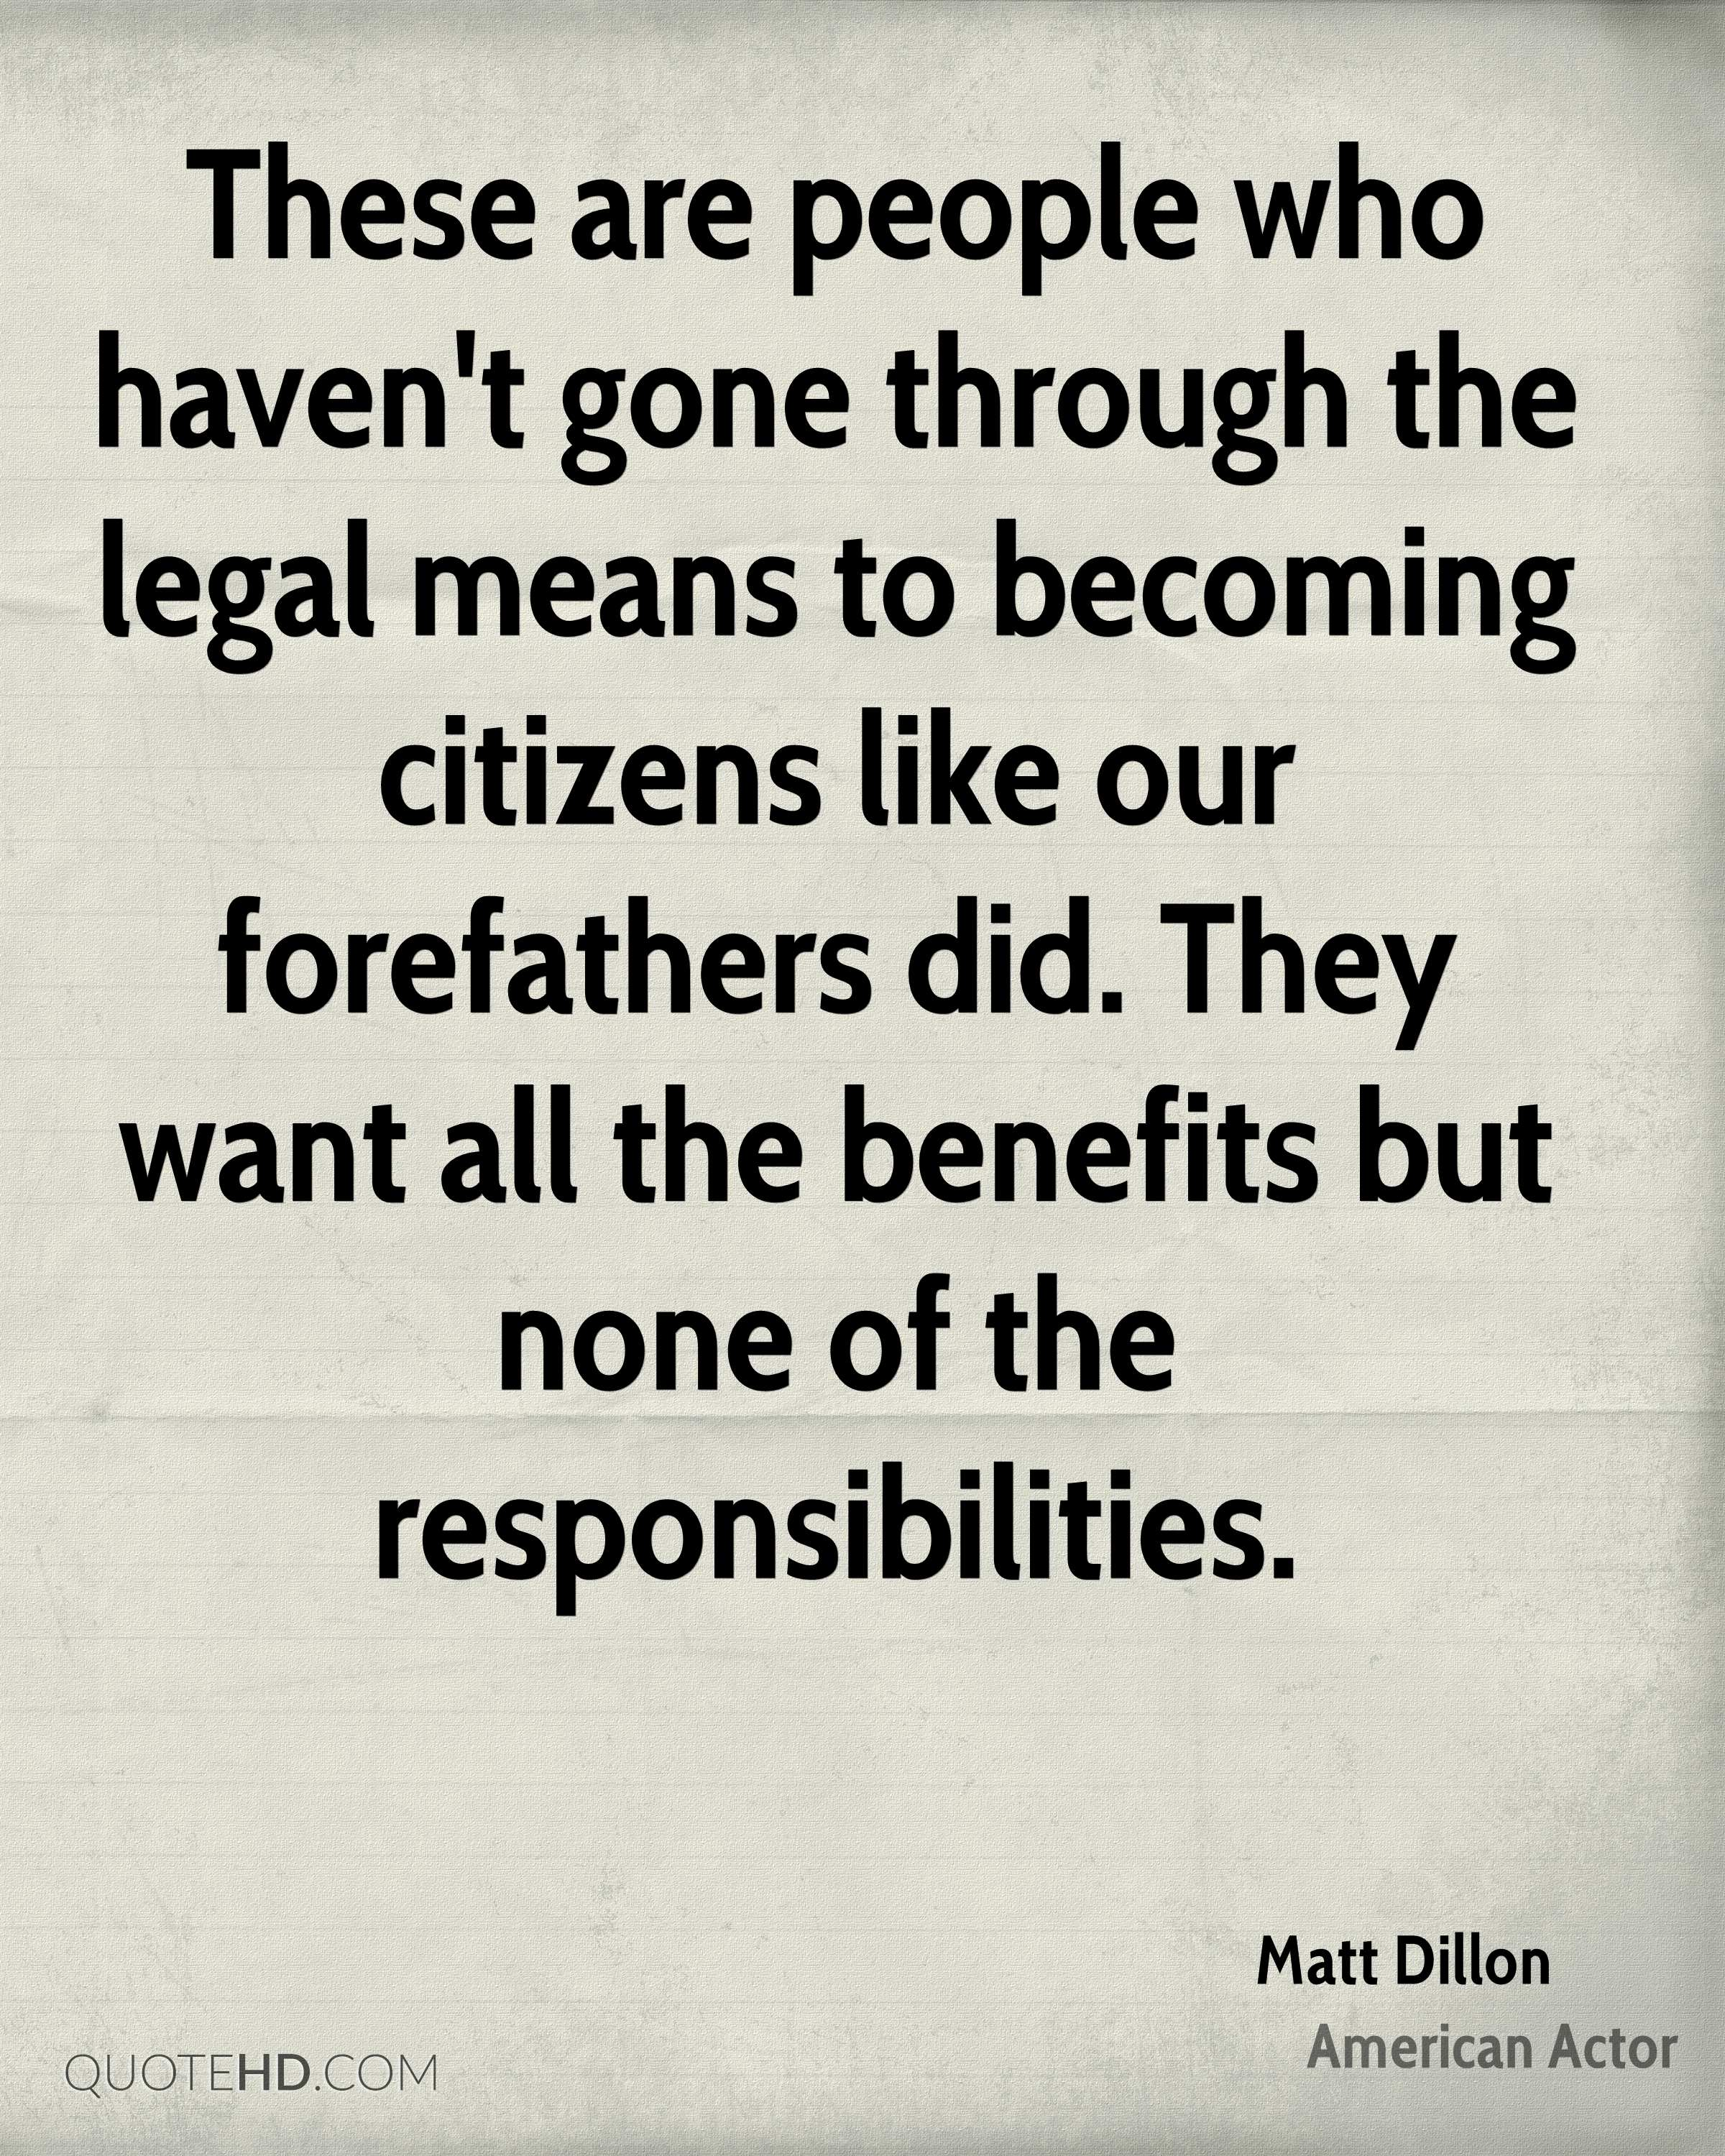 These are people who haven't gone through the legal means to becoming citizens like our forefathers did. They want all the benefits but none of the responsibilities.